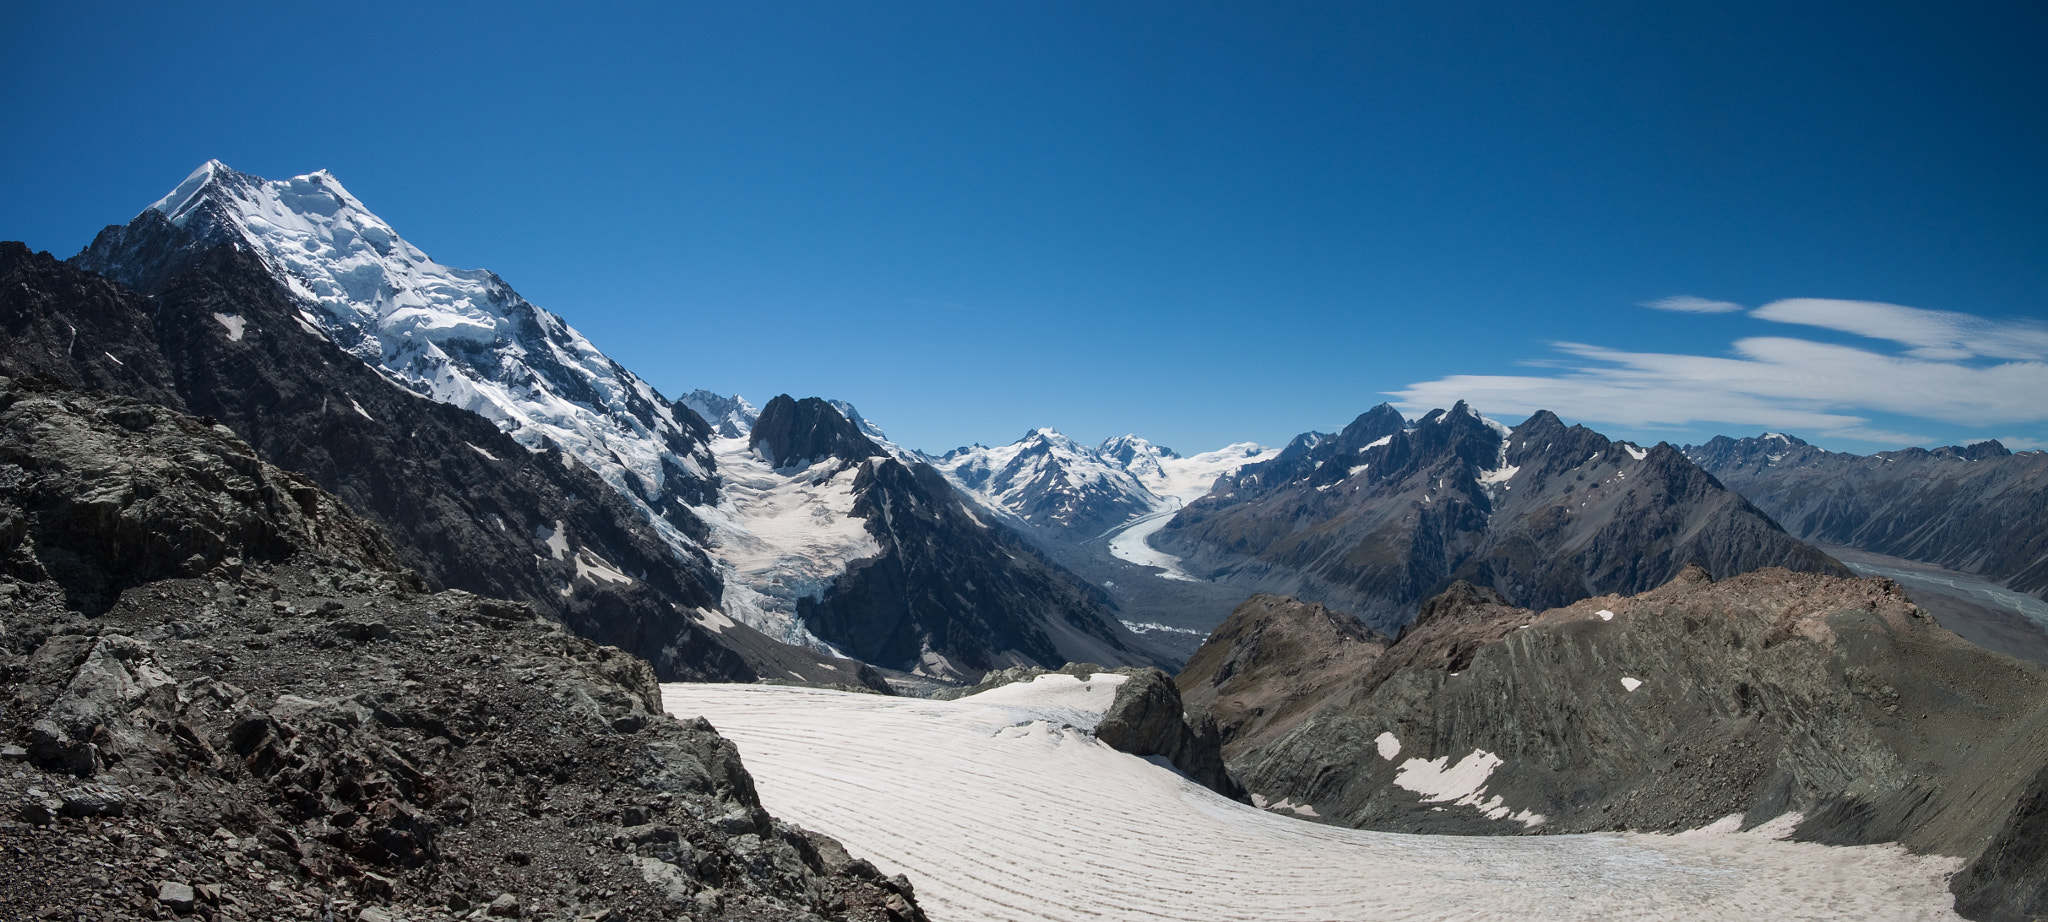 Photograph Mount Cook National Park by David Lennox on 500px